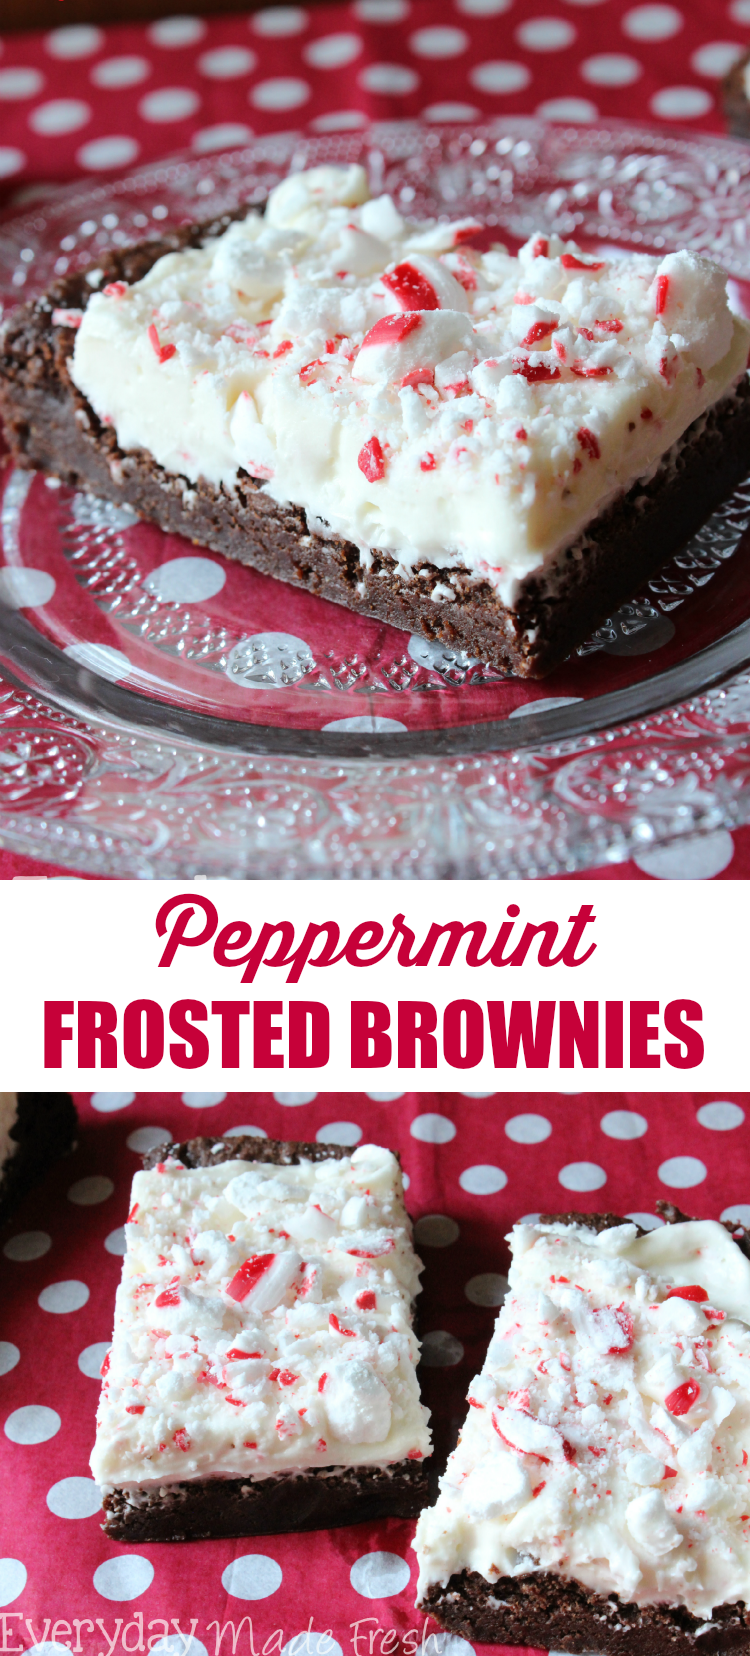 These Peppermint Frosted Brownies are made from a simple homemade mix, and topped with a cream cheese peppermint frosting that make them delectable! EverydayMadeFresh.com for OHMY-CREATIVE.COM